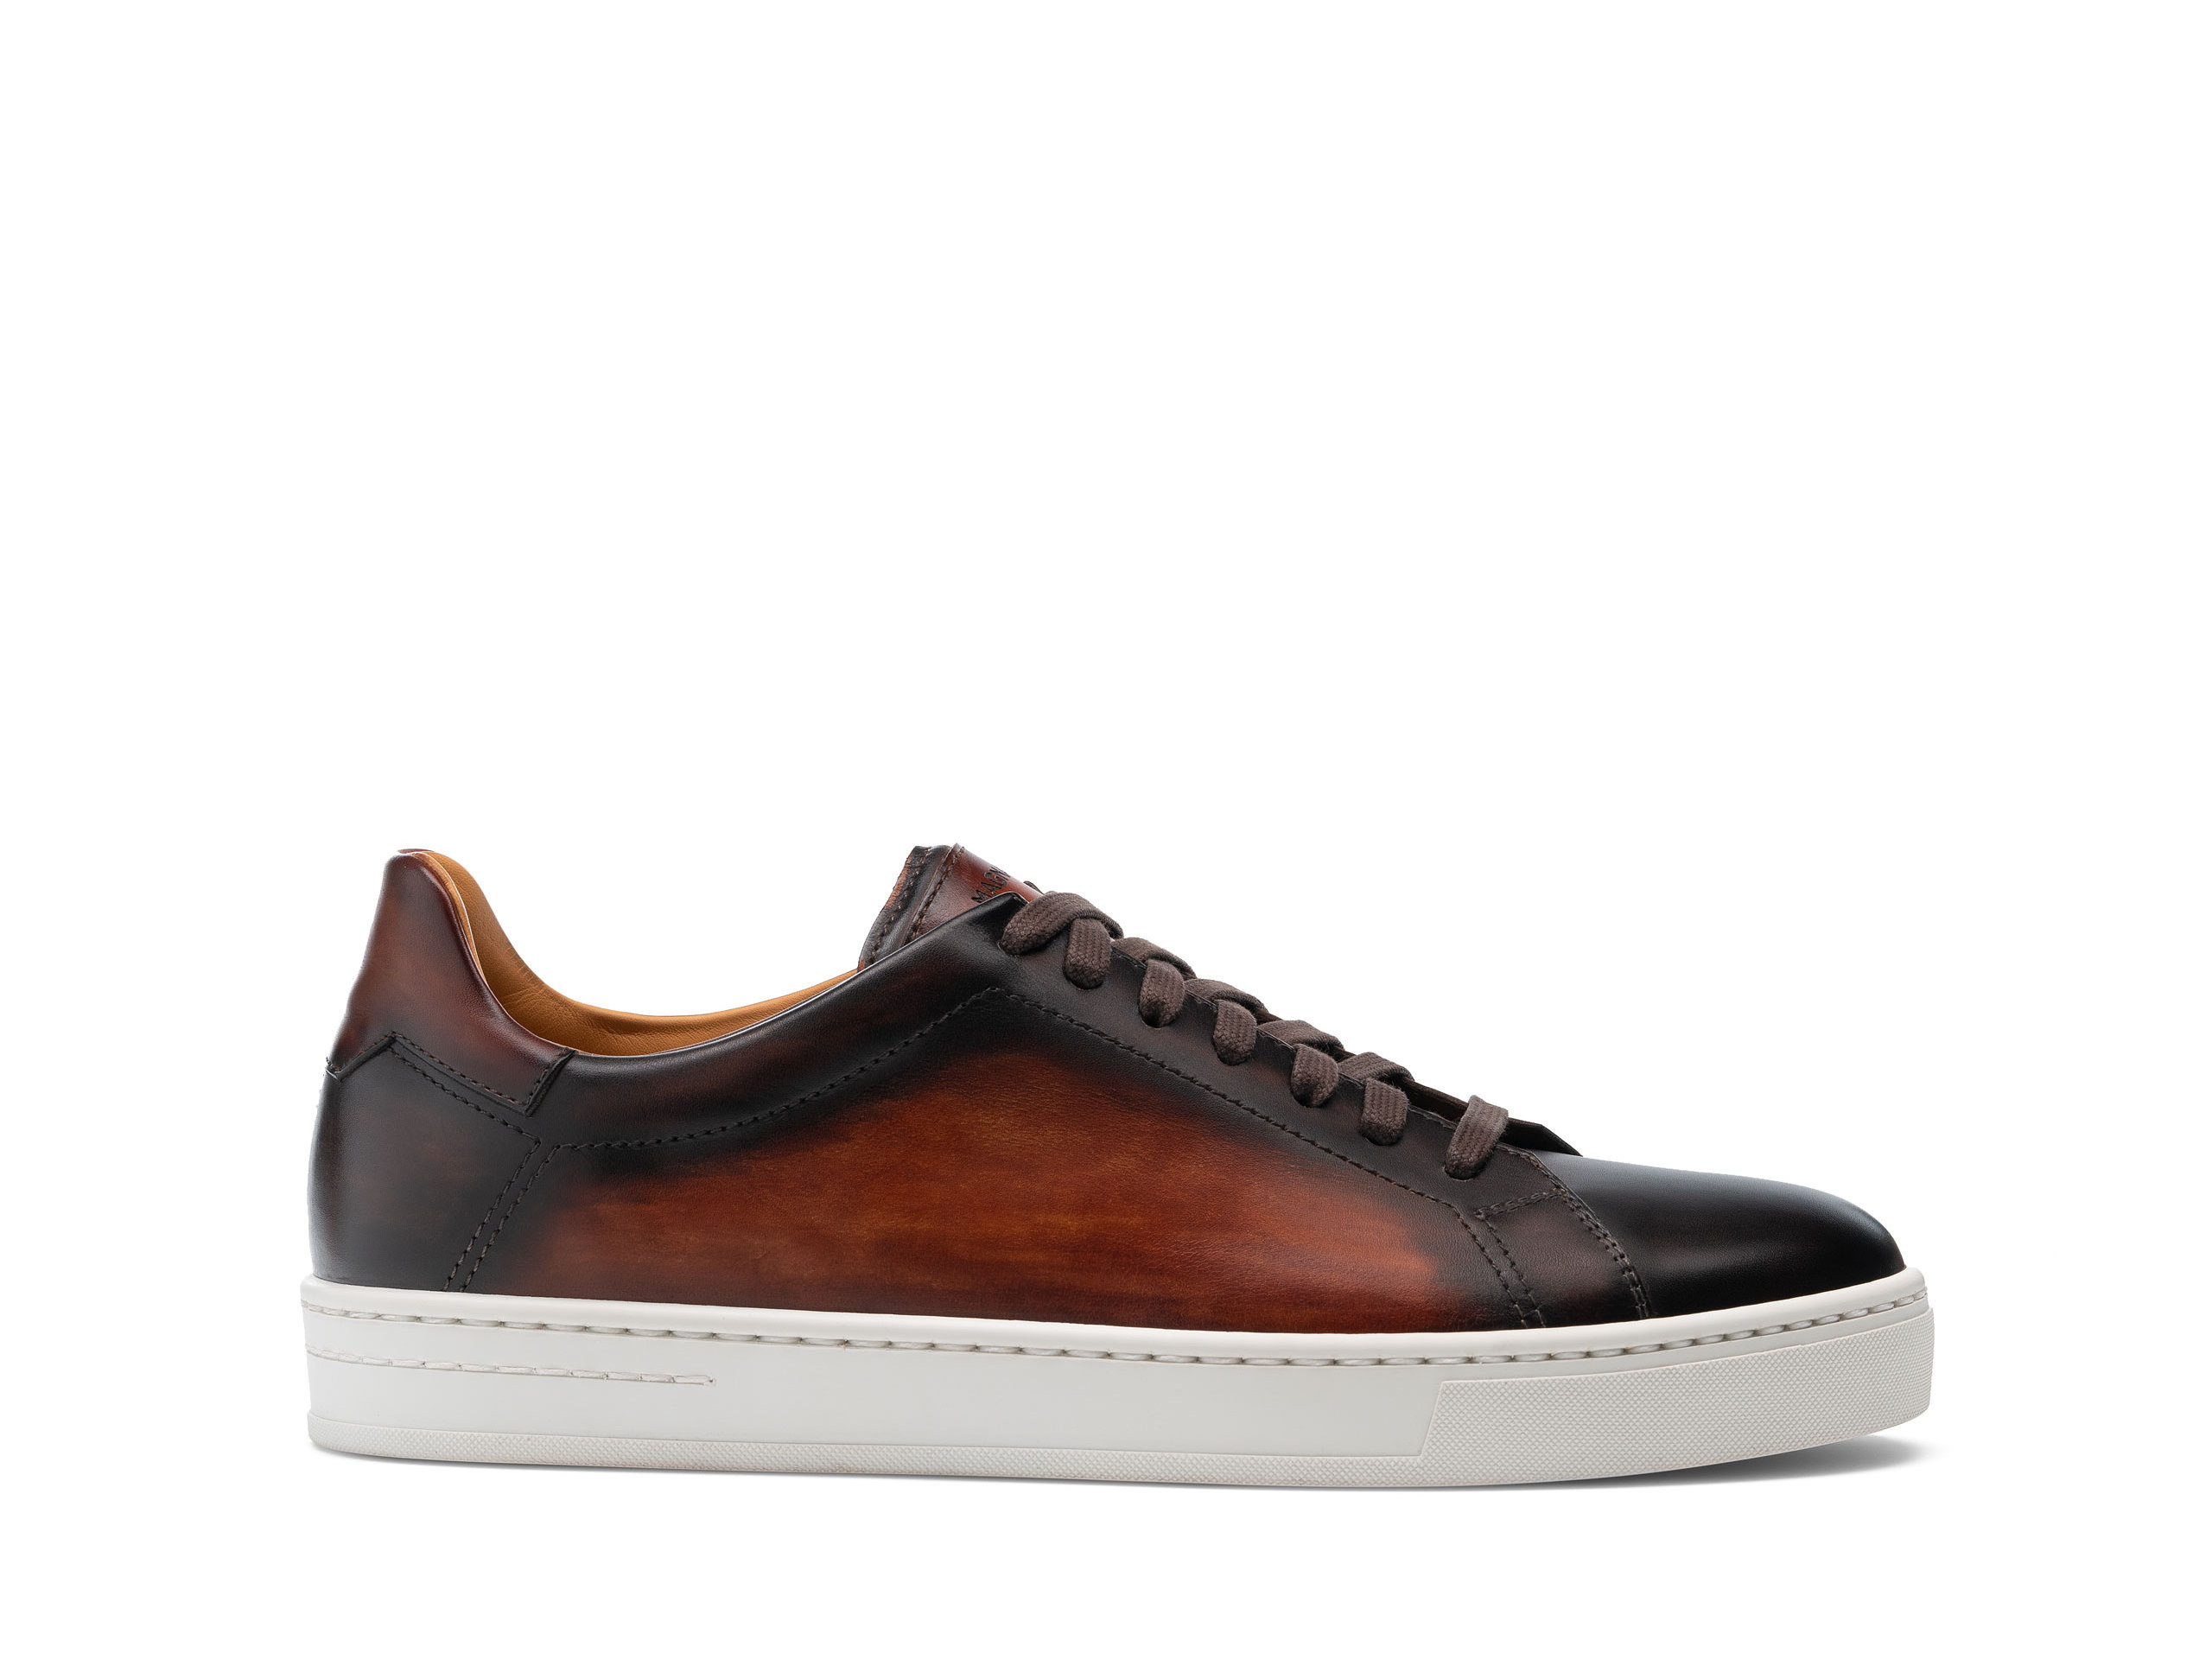 Side view of the Ruente Brown and Cognac Shoes